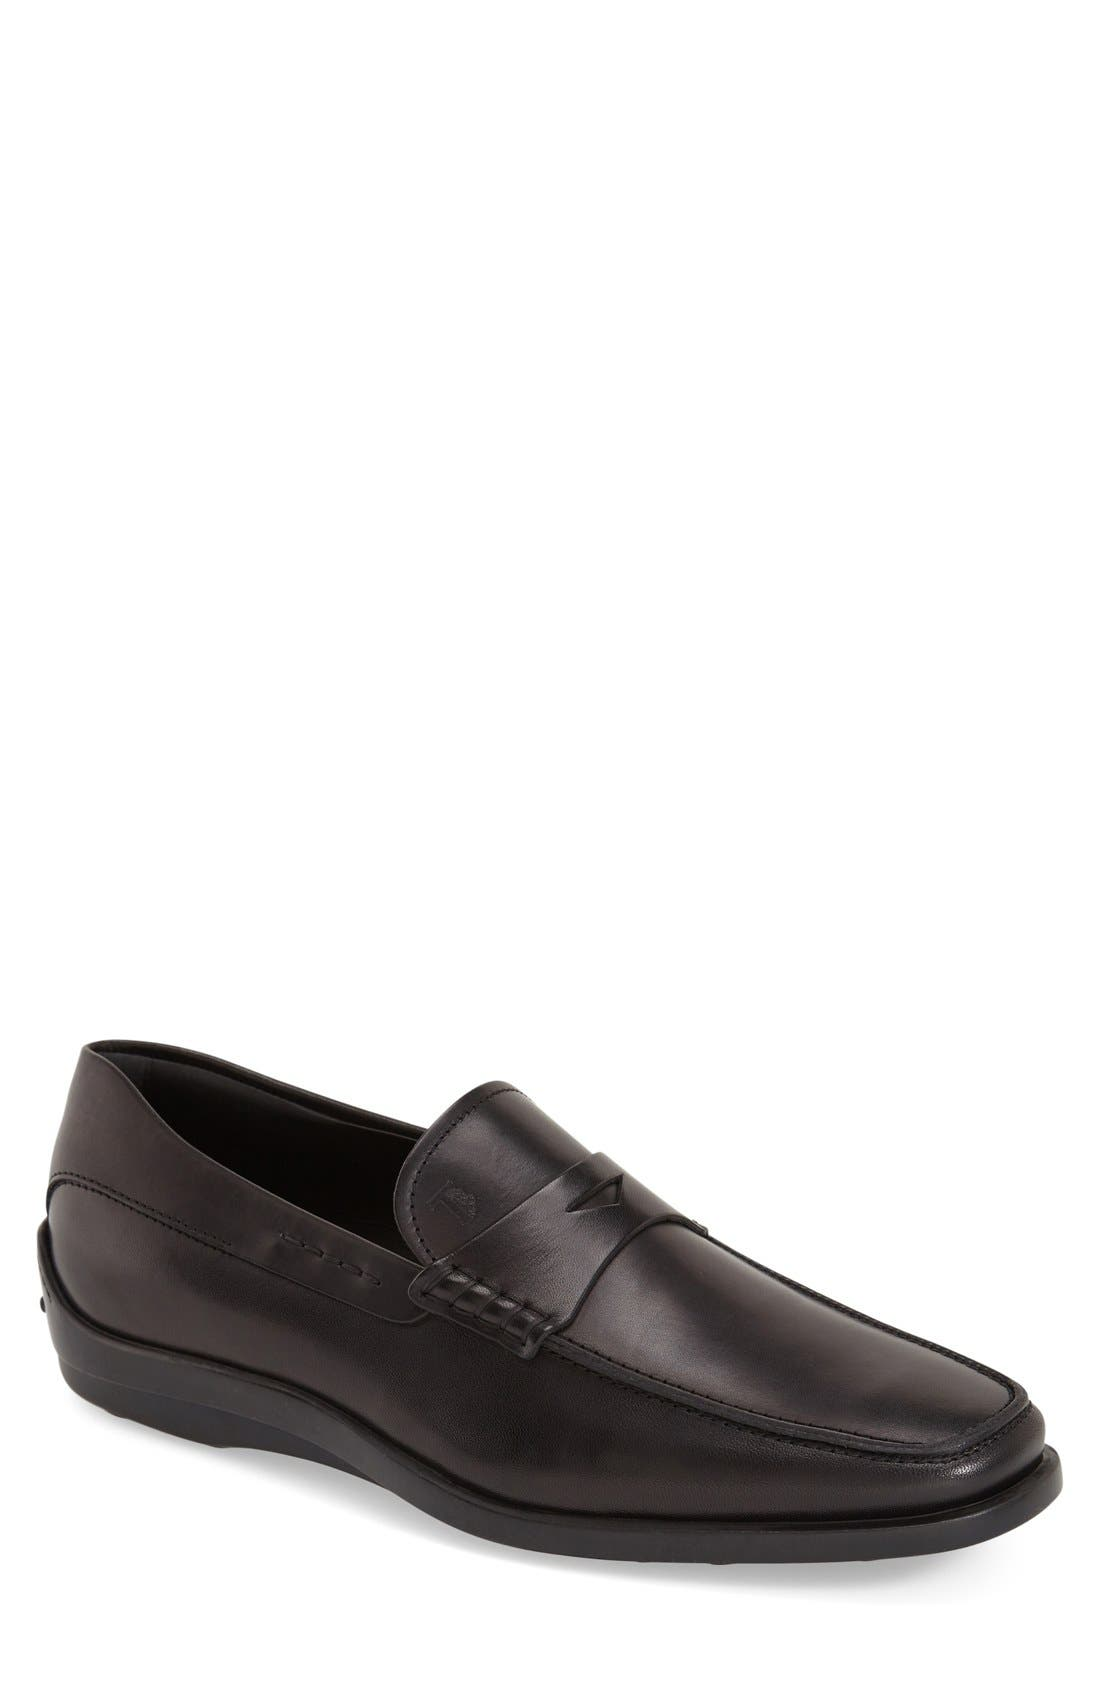 Tod's 'Quinn' Penny Loafer